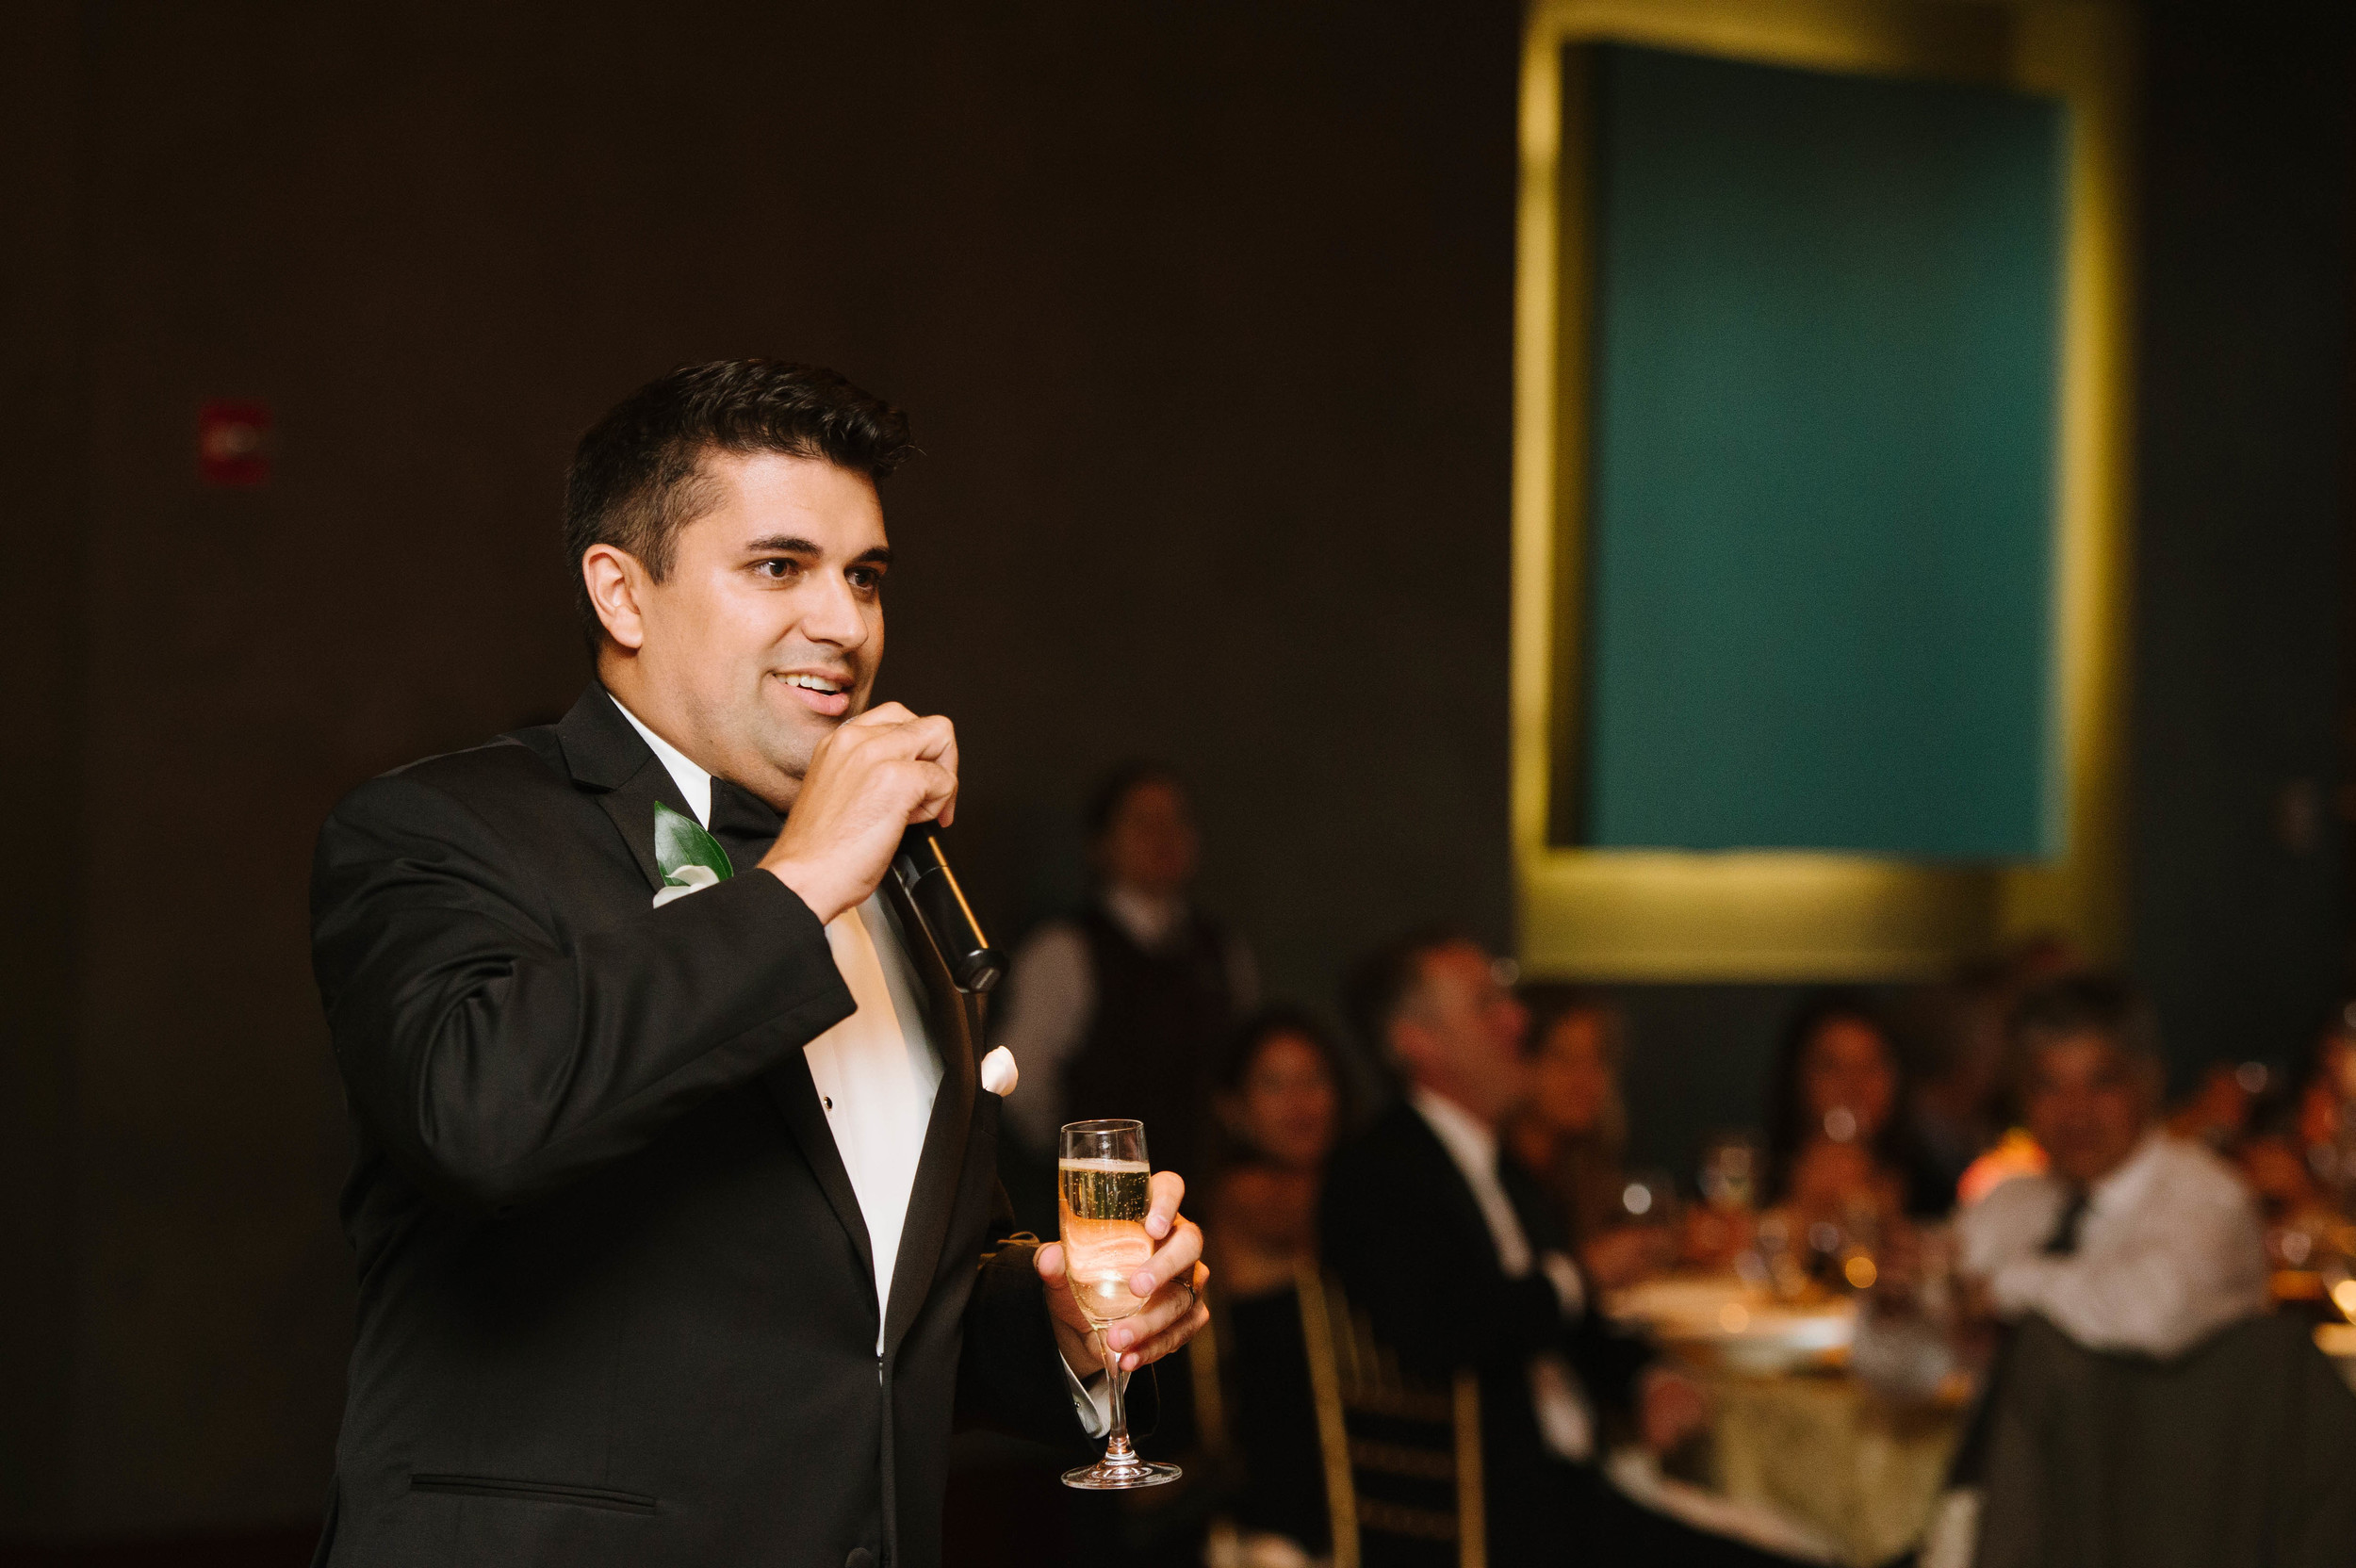 Wedding_Ritz_Carlton174.jpg